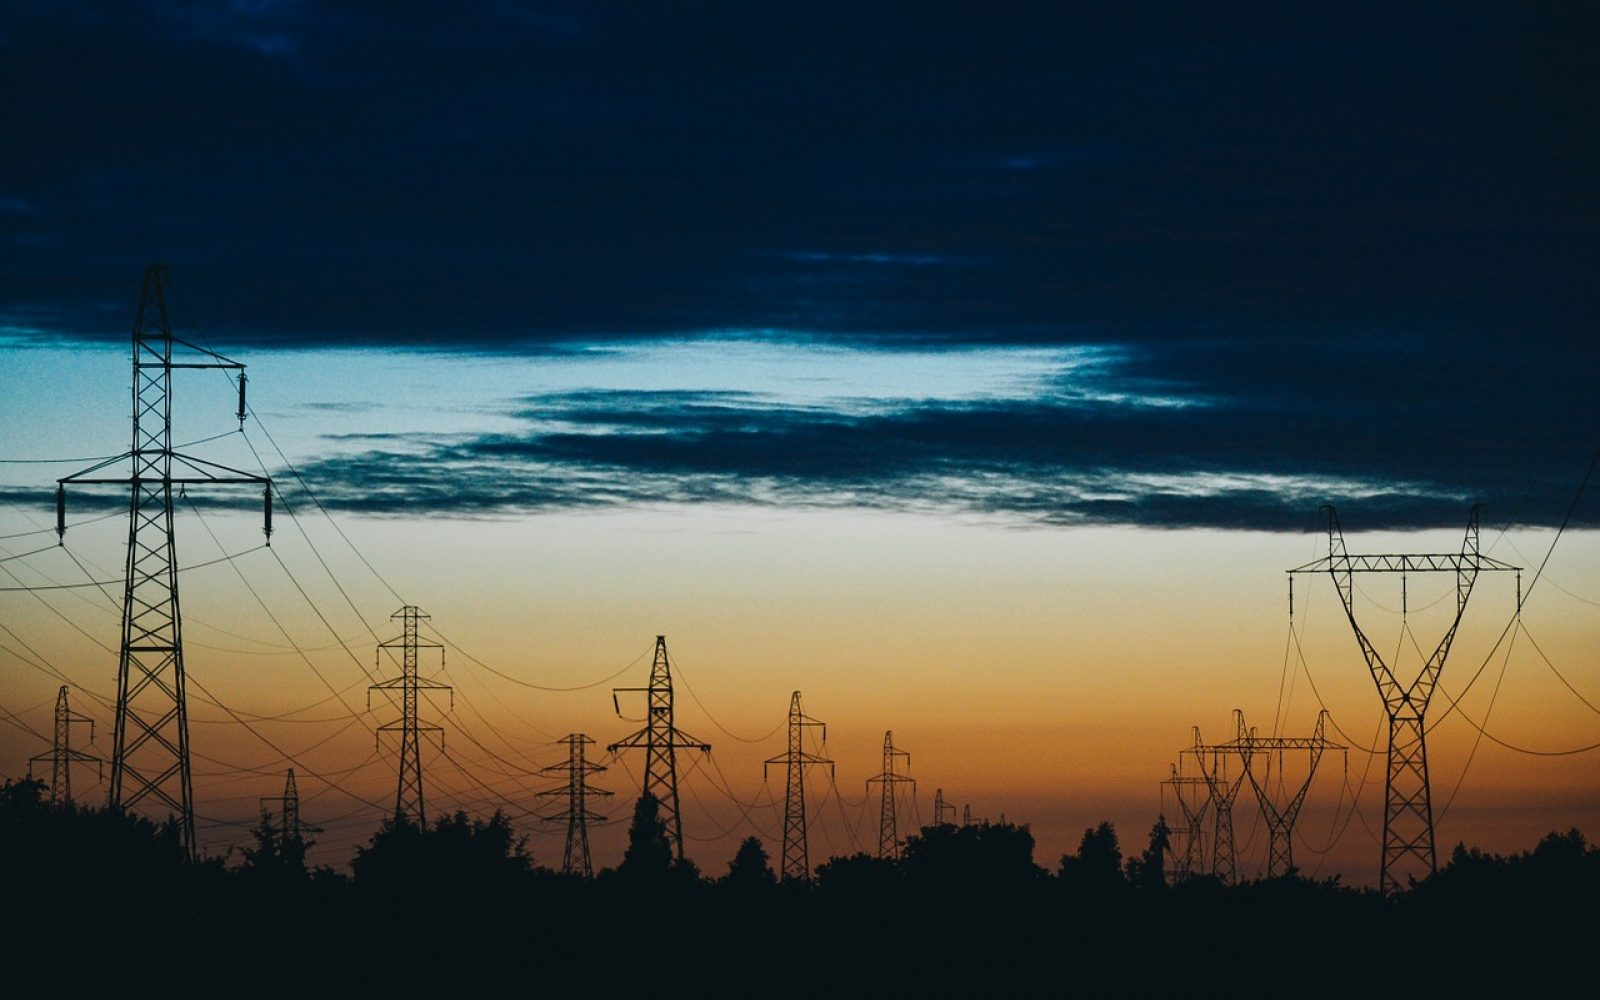 Wholesale power costs fell by £488 million during the COVID-19 lockdown.